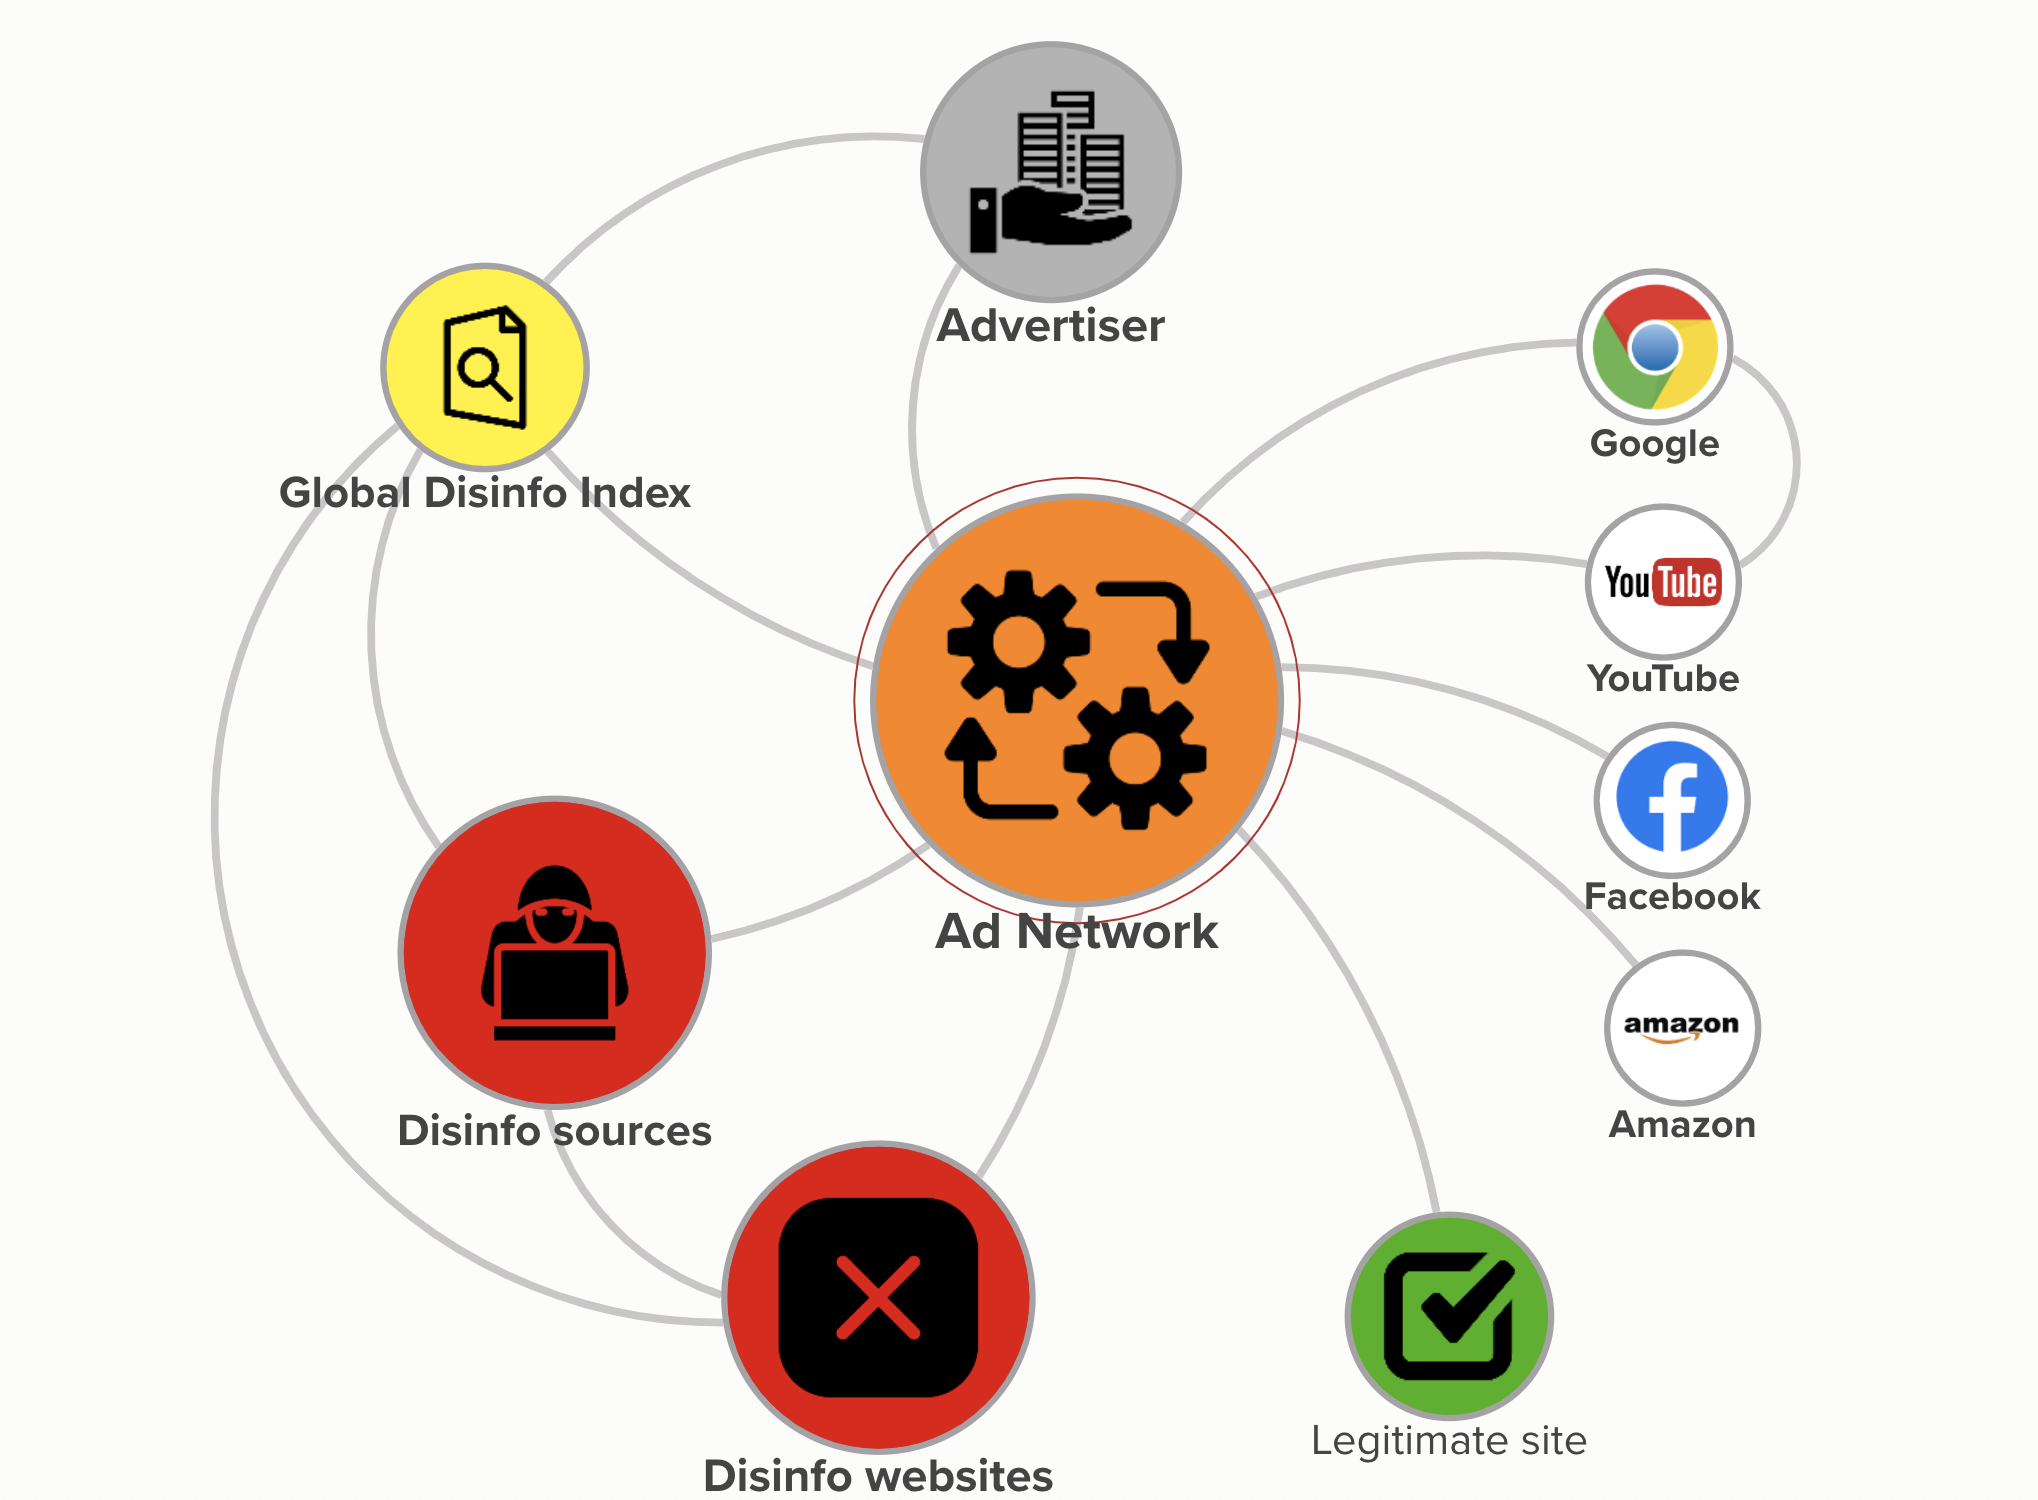 Disinformation actors rely on ad networks for di